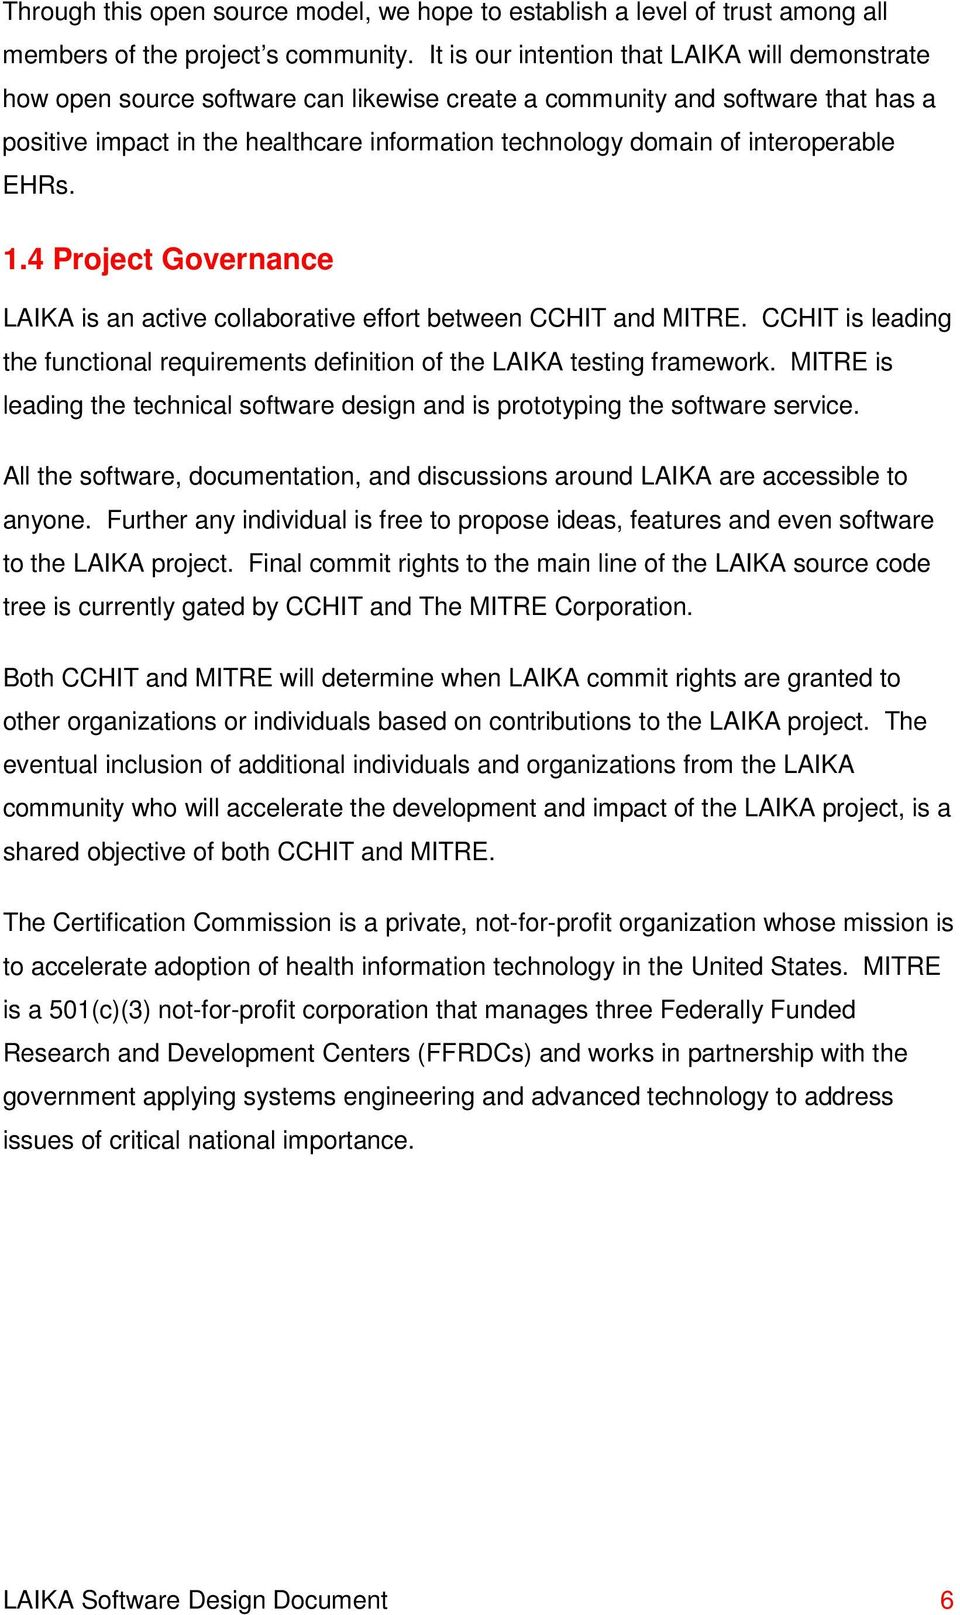 interoperable EHRs. 1.4 Project Governance LAIKA is an active collaborative effort between CCHIT and MITRE. CCHIT is leading the functional requirements definition of the LAIKA testing framework.